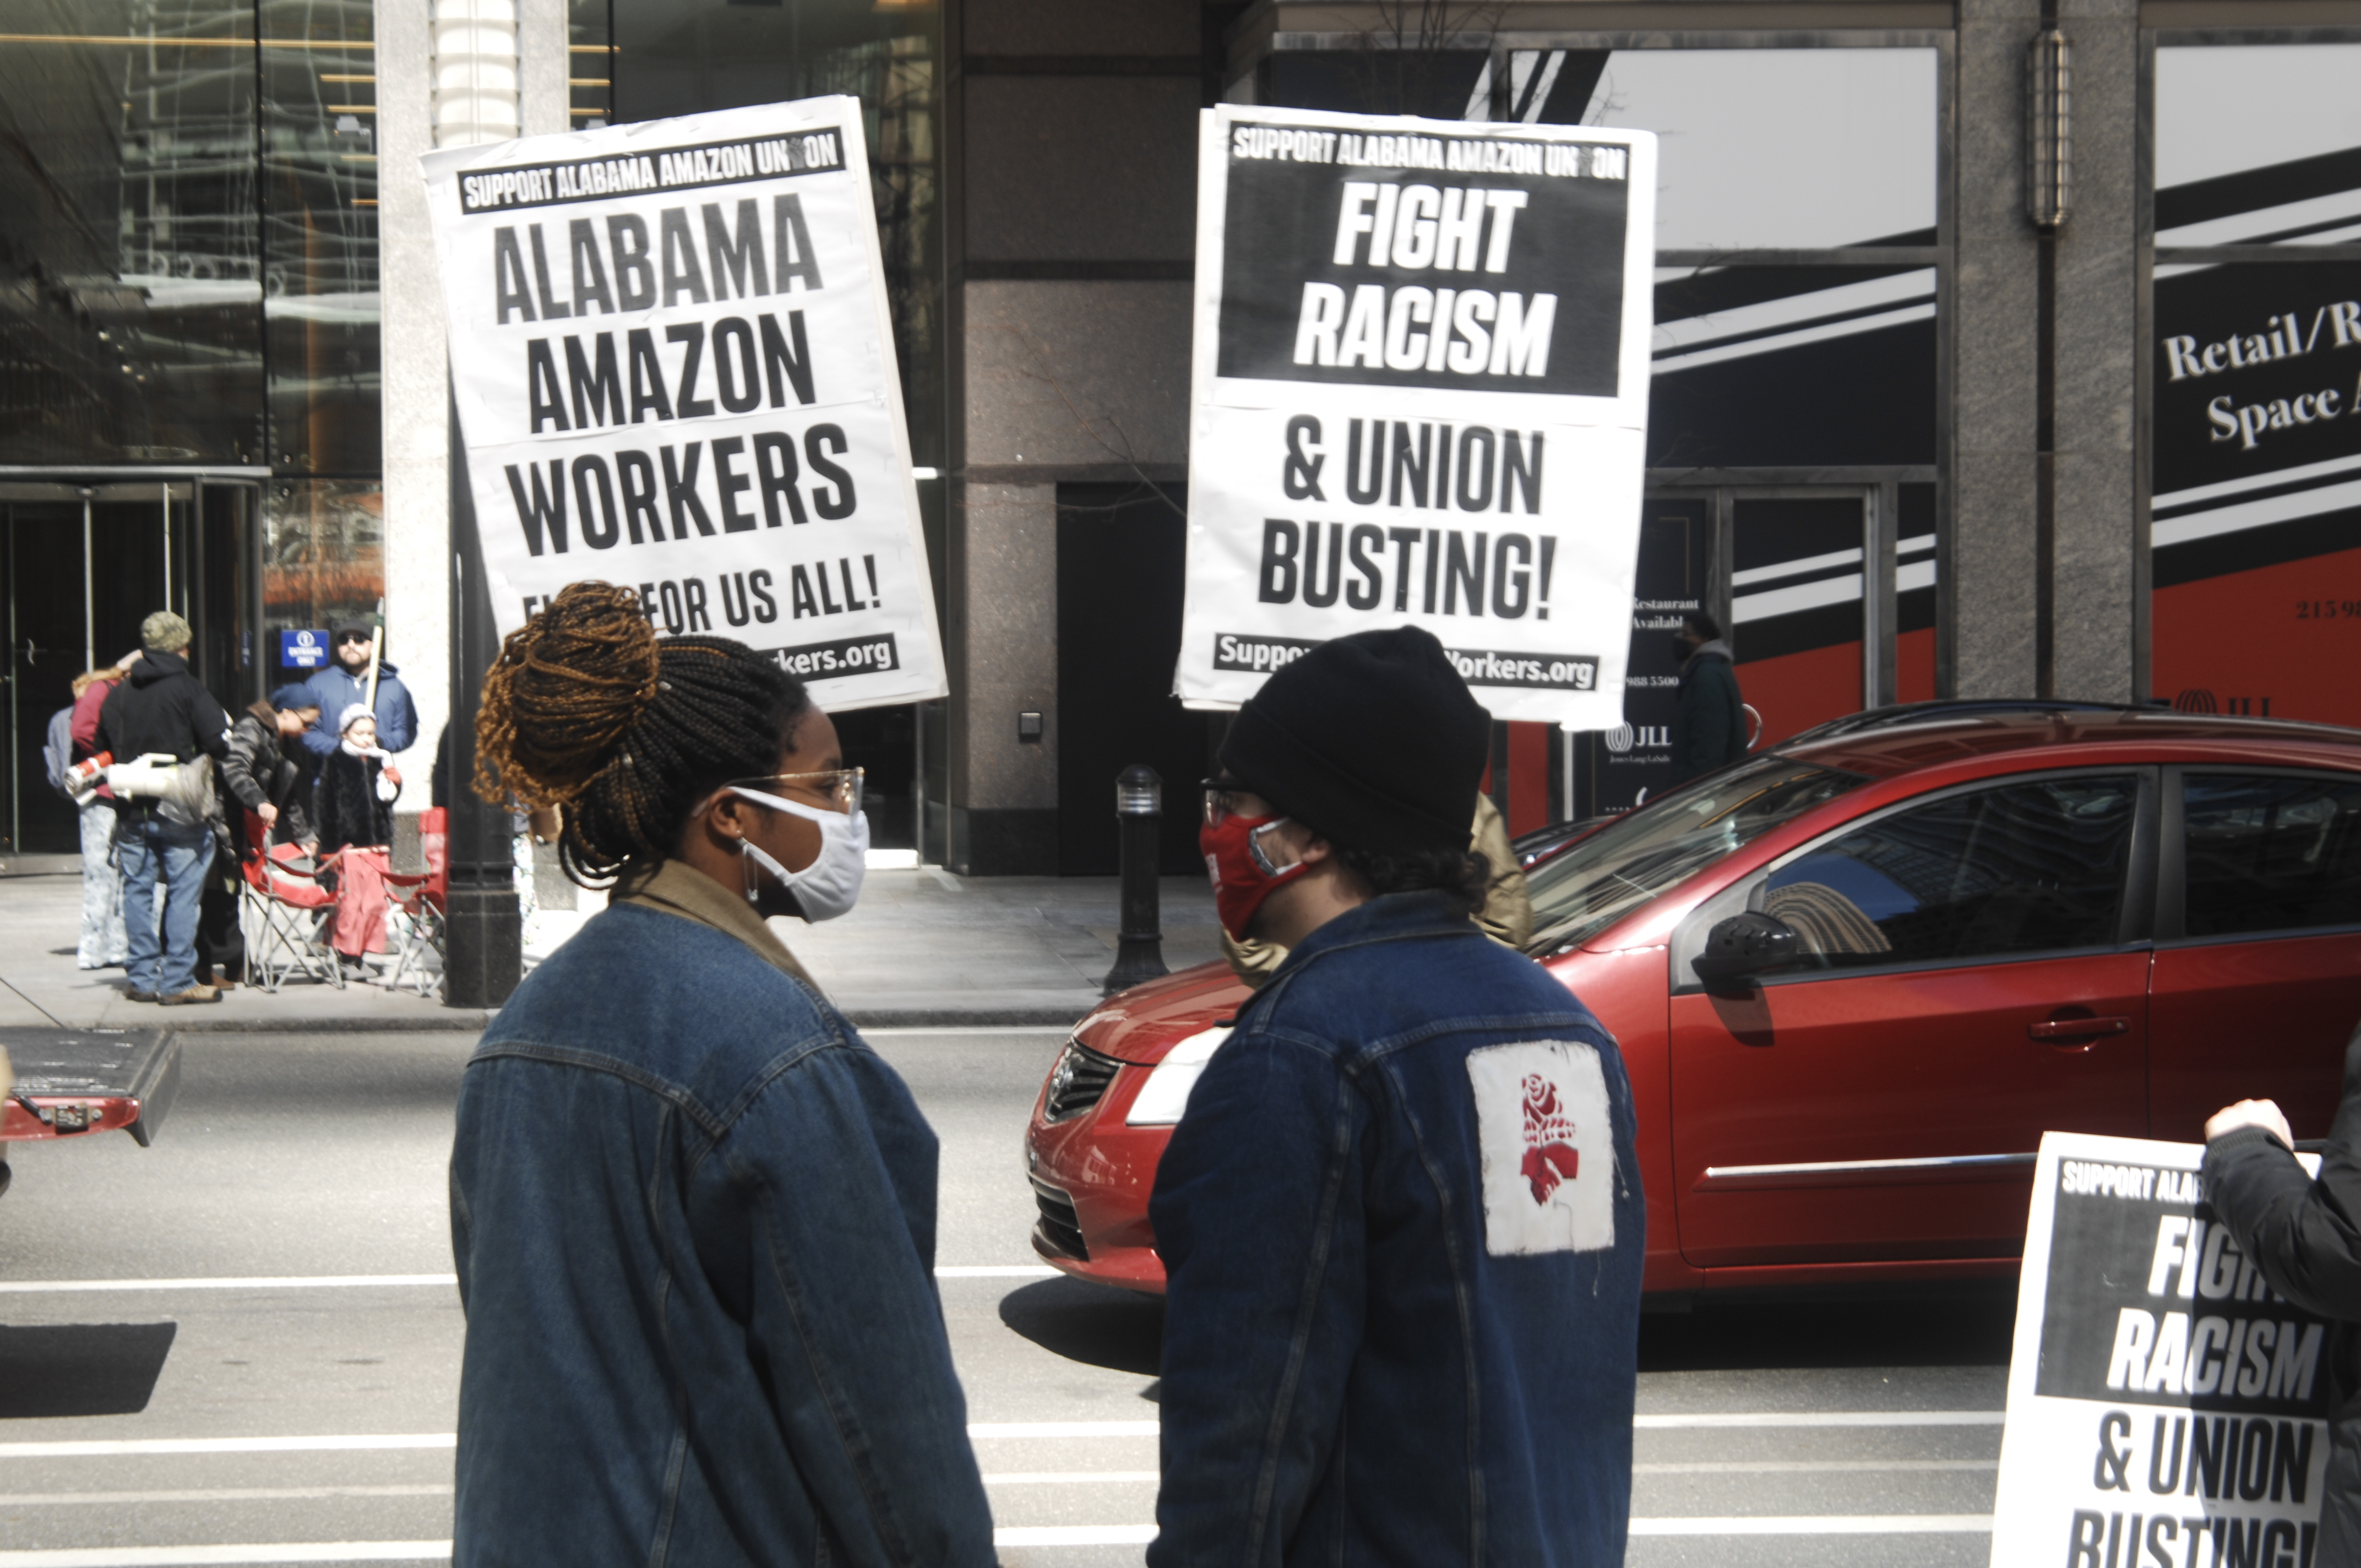 Protesters rally support from drivers as they pass by a rally in support of unionizing Amazon workers in Bessemer, Alabama in front of the law office of Morgan and Lewis during a national day of action in Philadelphia, PA, on March 20, 2021. Morgan and Lewis are known for their union-busting activities and are assisting Amazon in its efforts to bust up the unionizing efforts in Bessemer, Alabama. (Photo by Cory Clark/NurPhoto via AP)